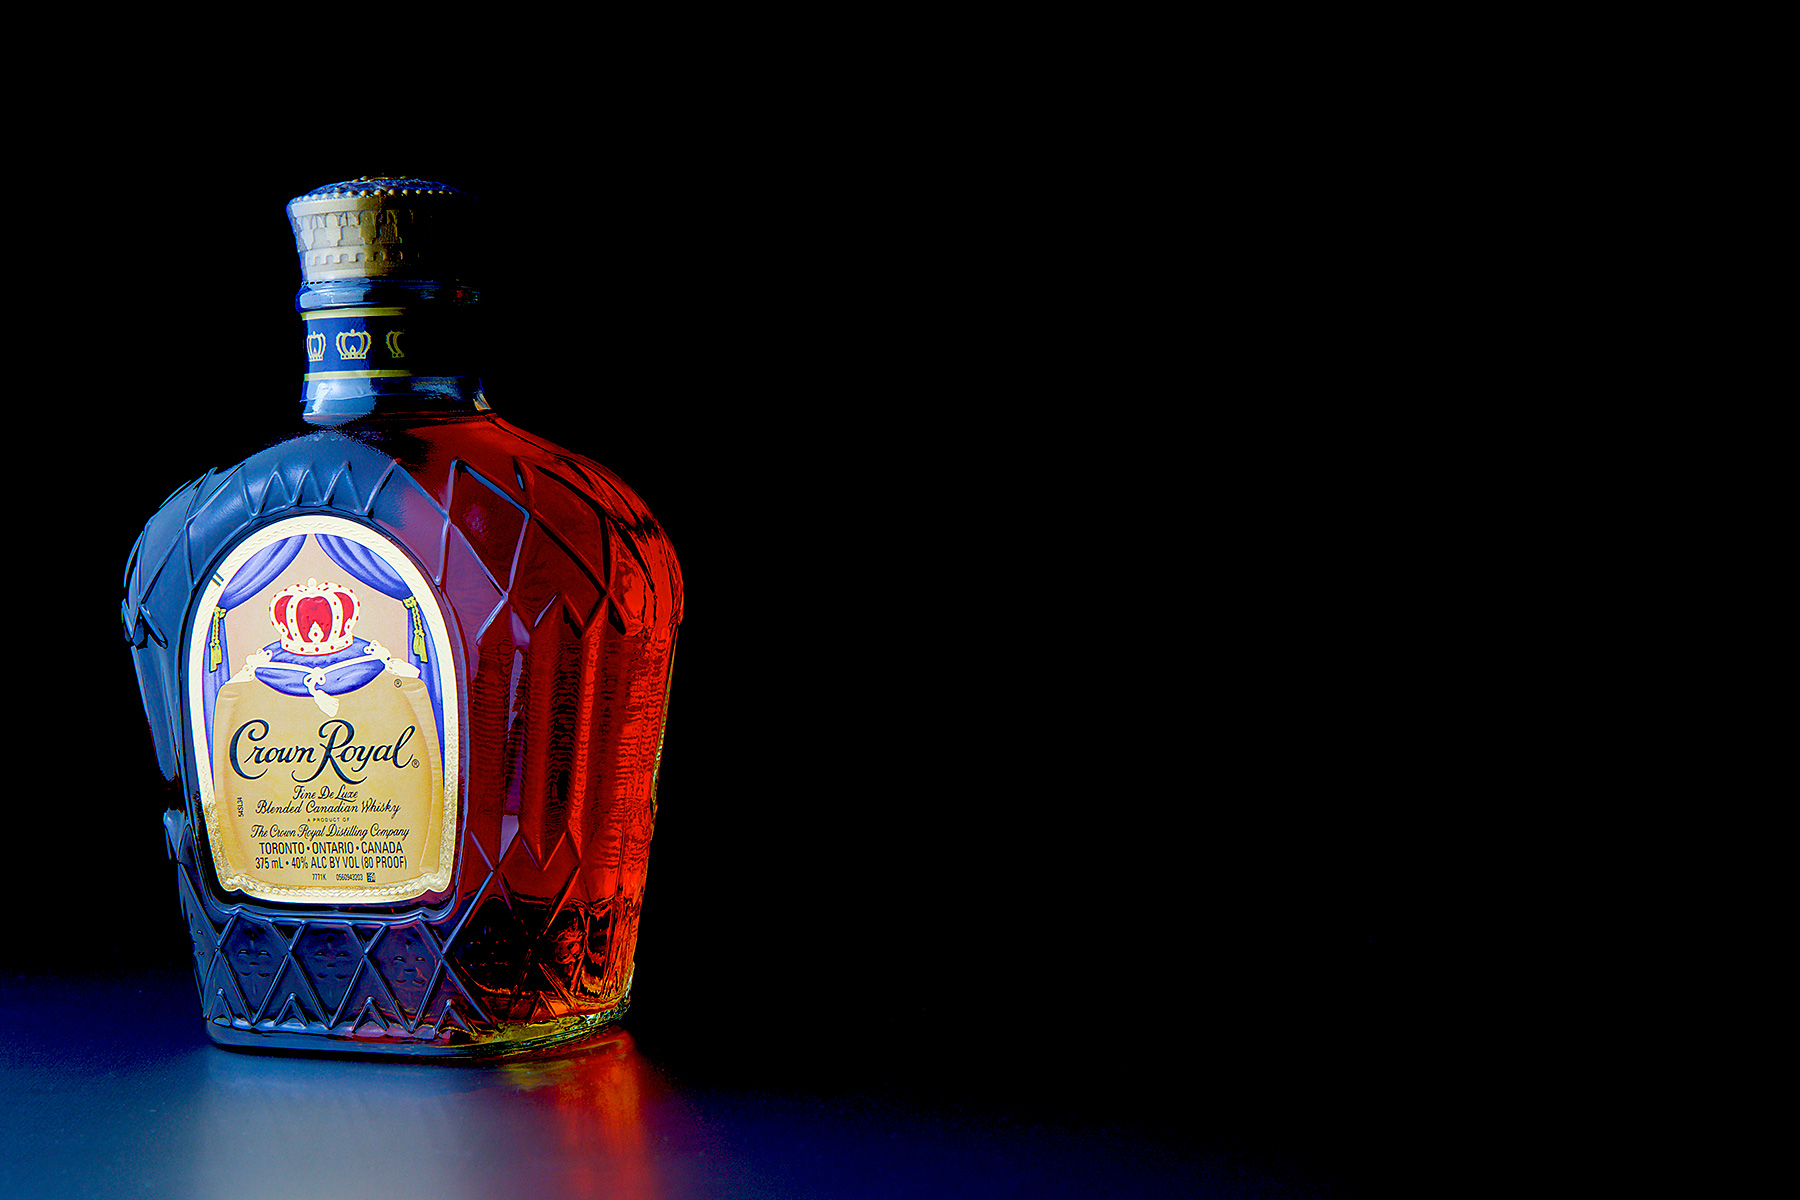 Bottle-of-Crown-Royal-on-Table-